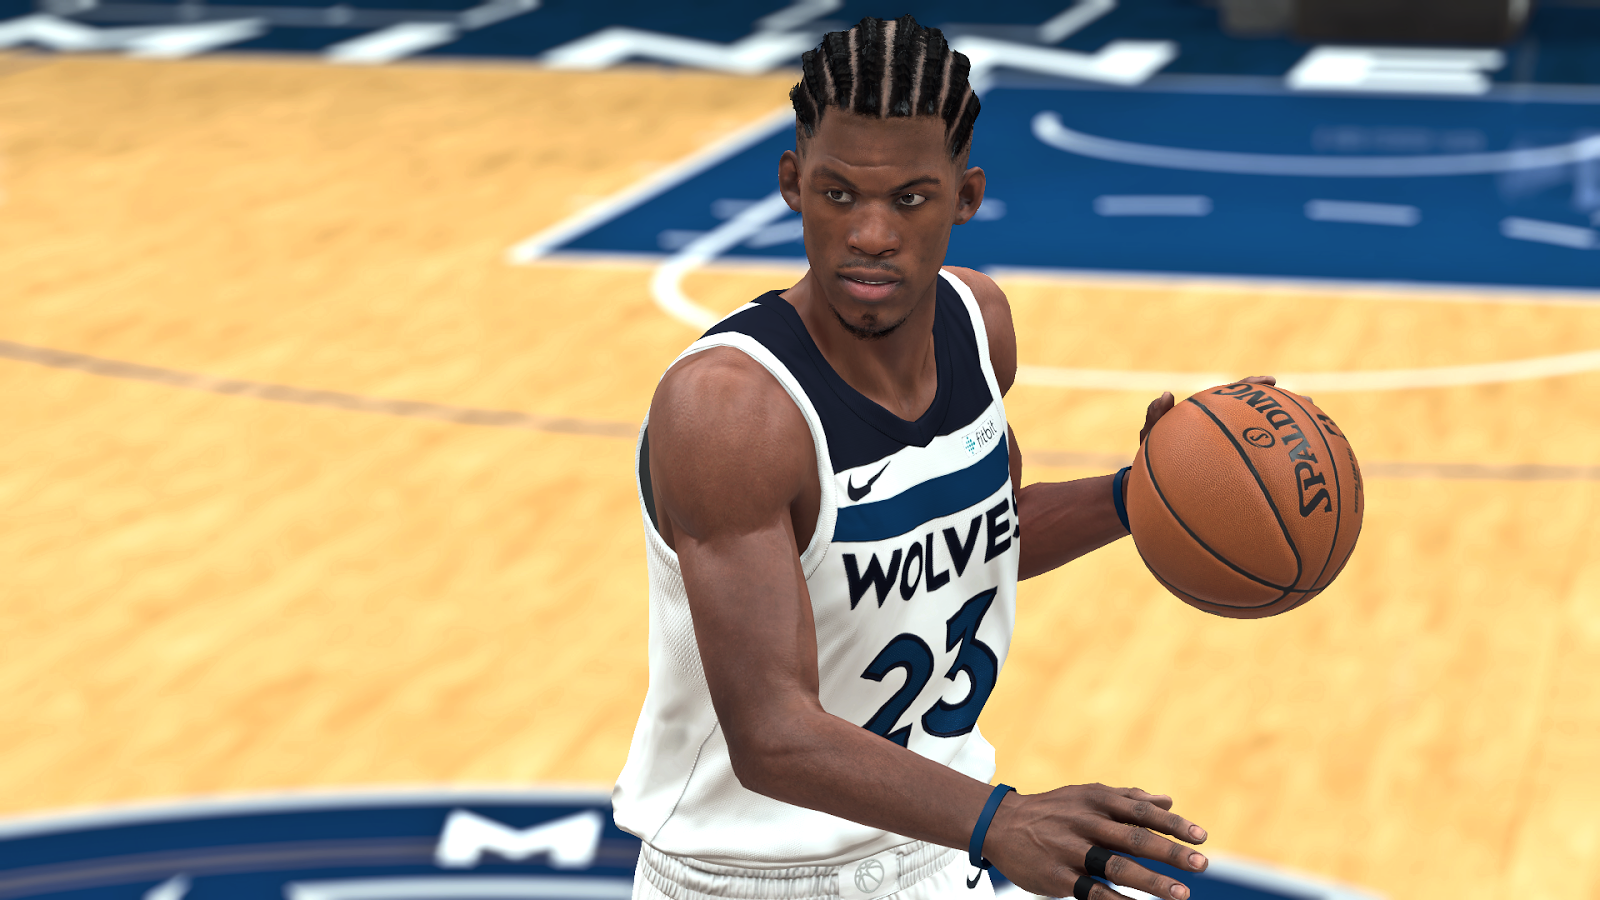 DNA Of Basketball | DNAOBB: NBA 2K18 Jimmy Butler Cyberface New Look by YG13